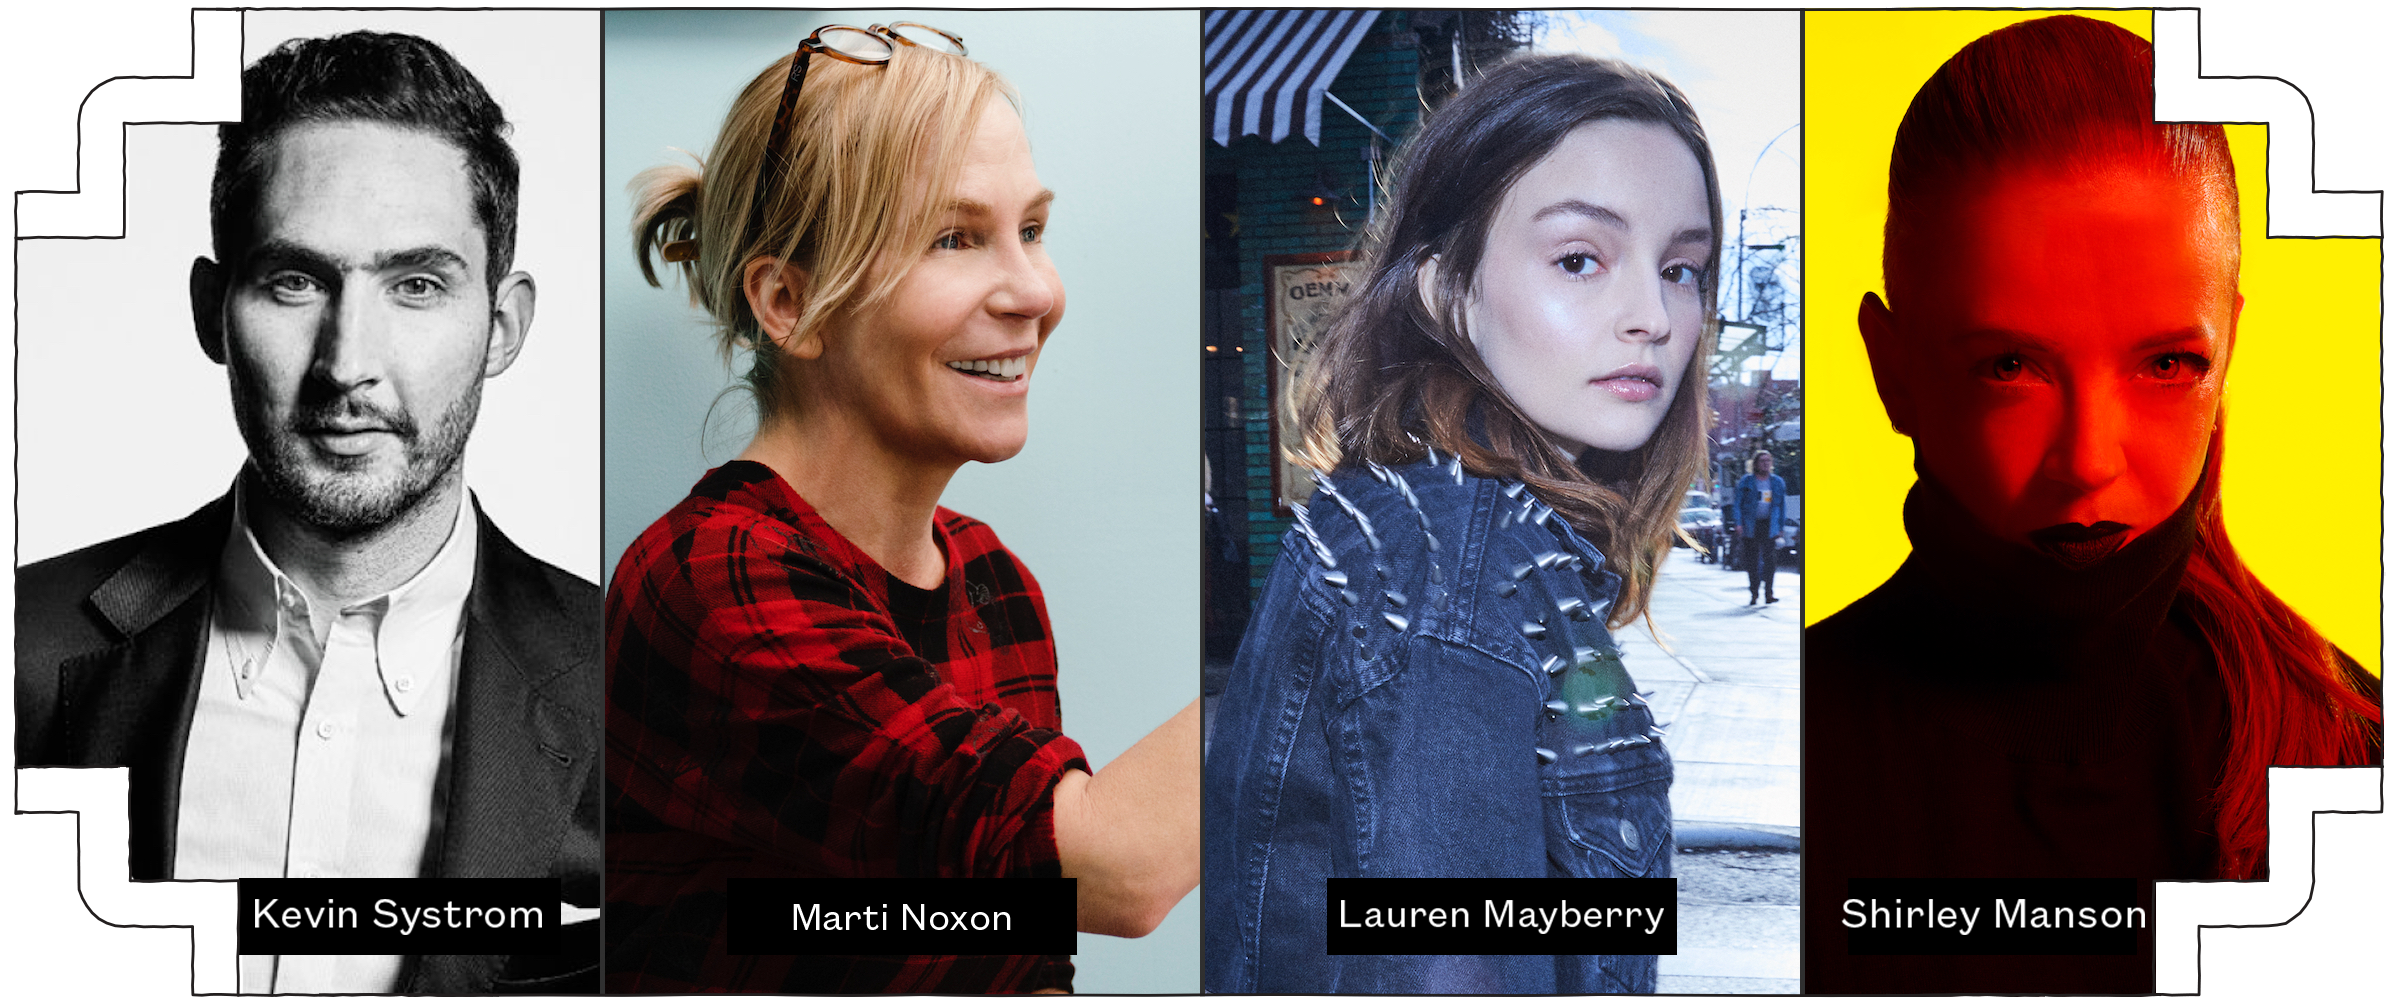 2019 SXSW Keynotes – Kevin Systrom, Marti Noxon (Photo by Patrick Harbron, AMC), Lauren Mayberry, and Shirley Manson